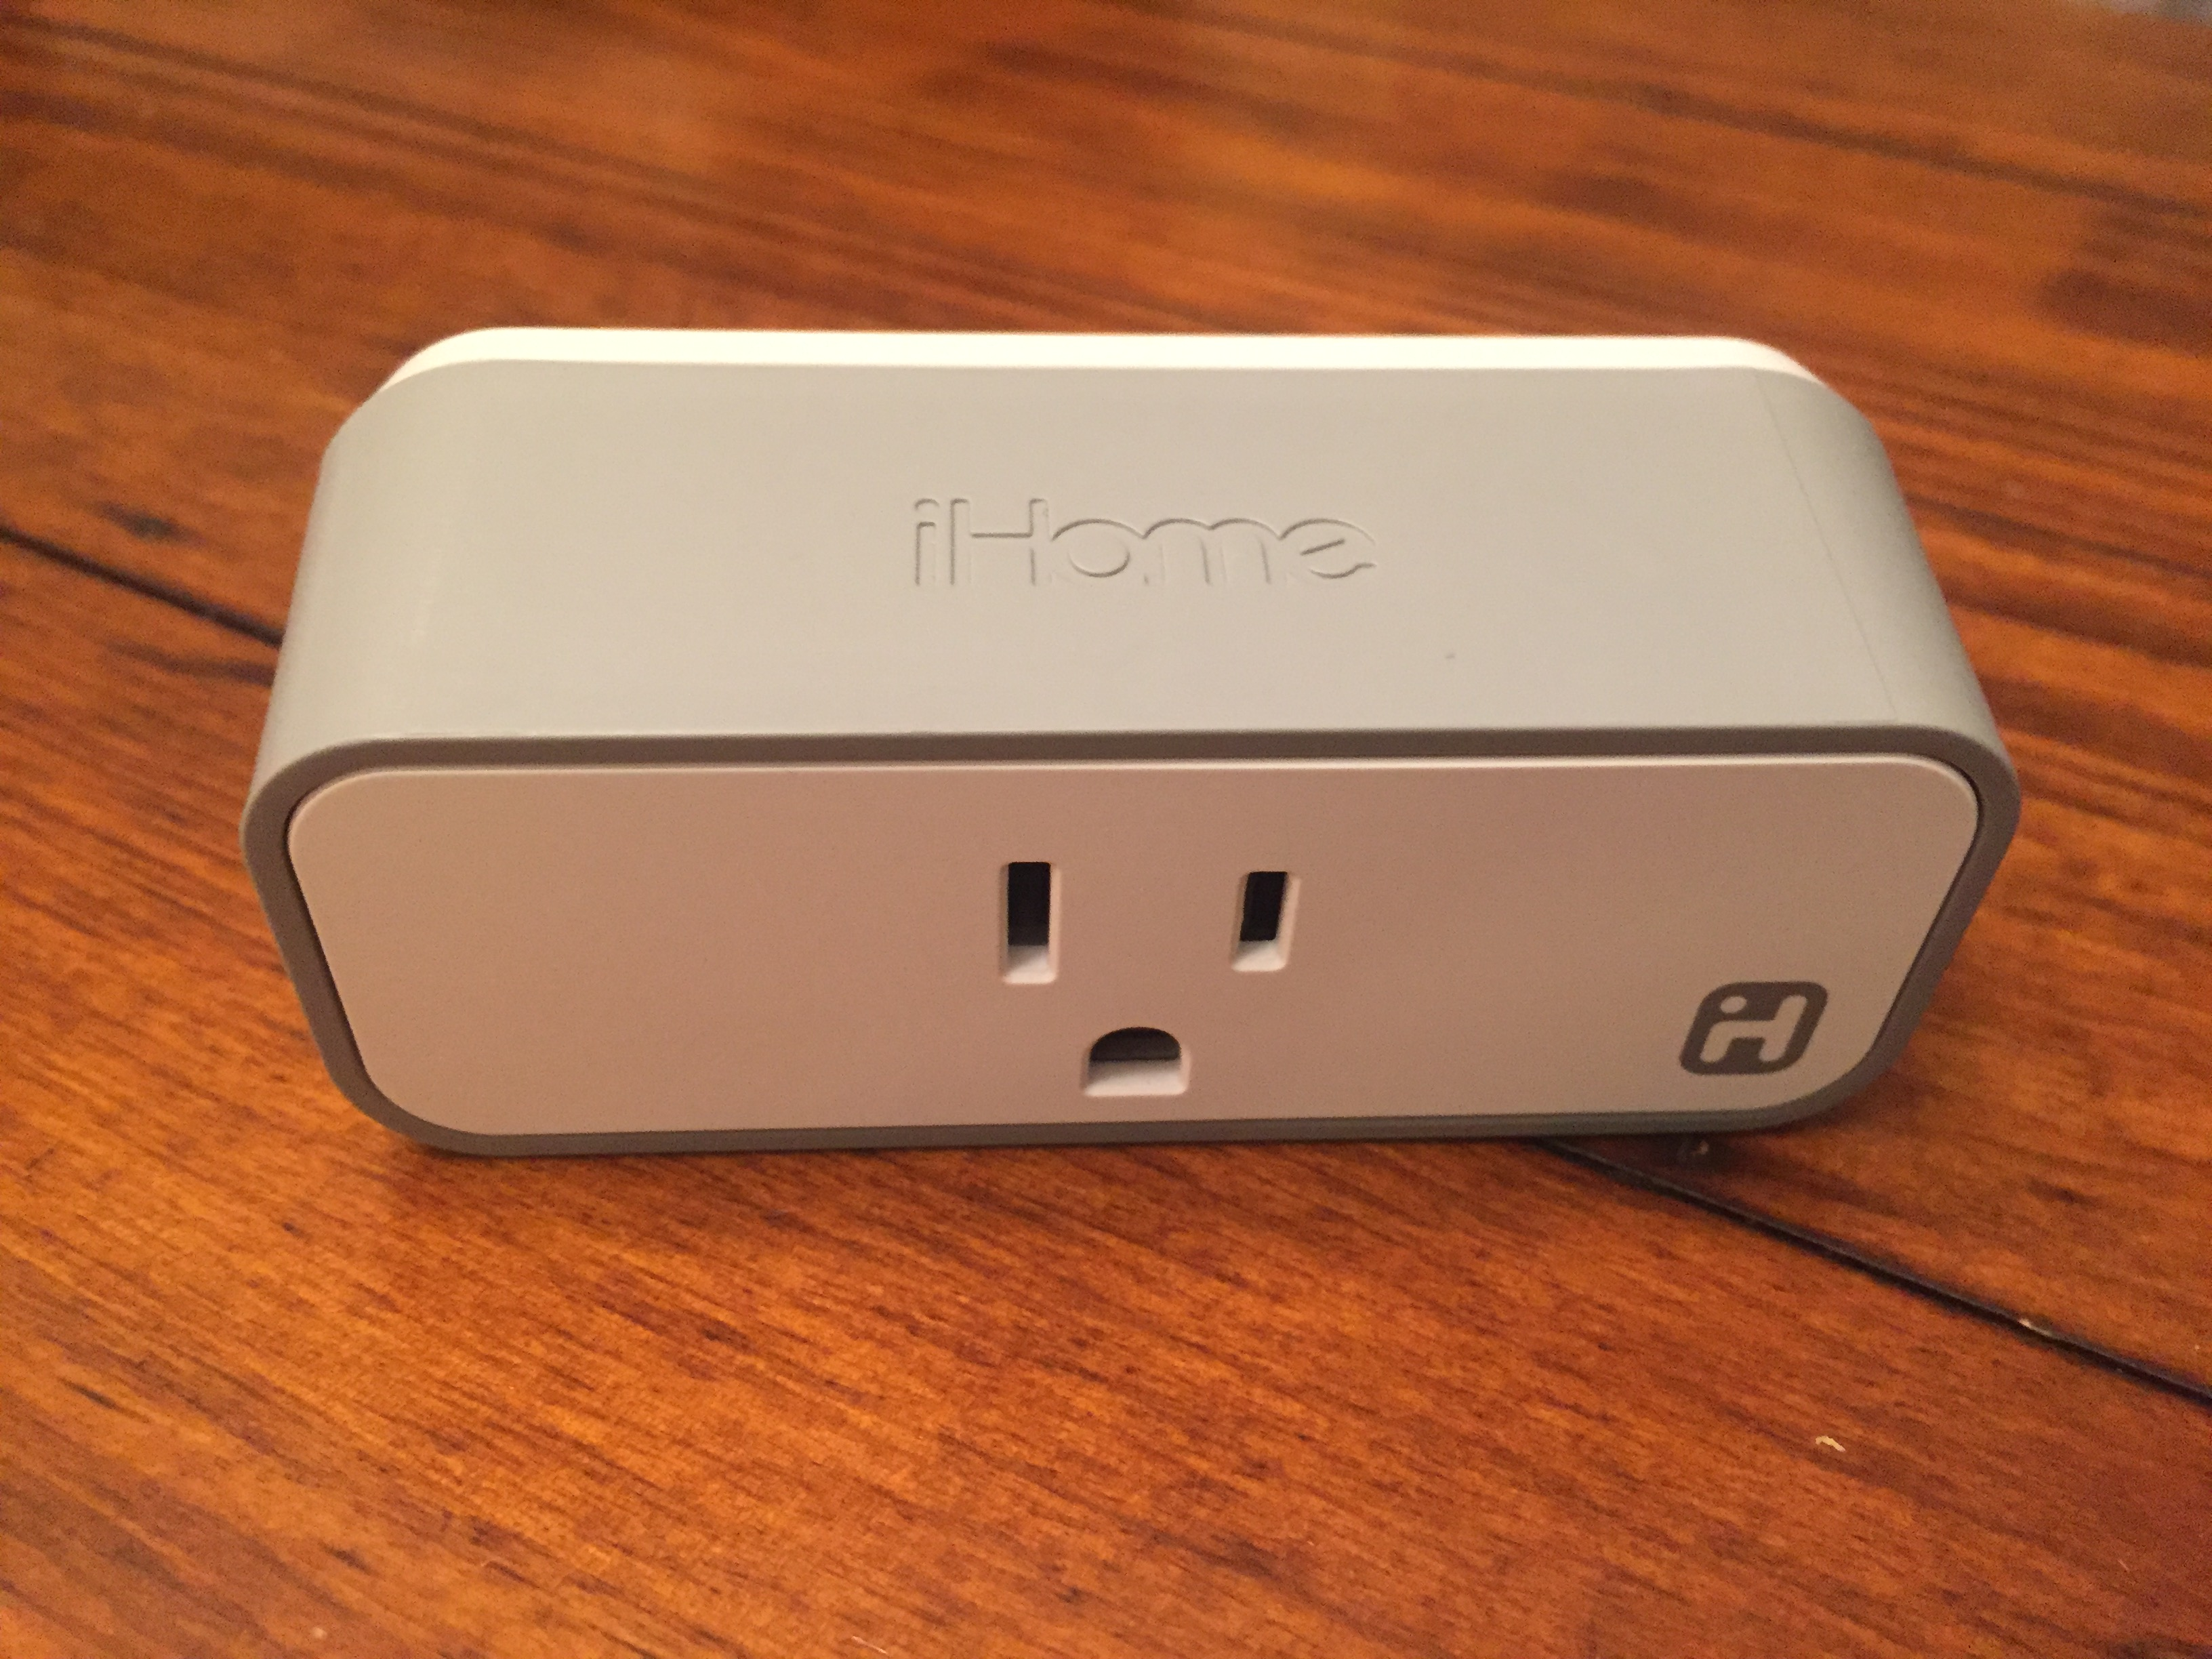 Awe Inspiring Review Ihome Smart Plug And 5 In 1 Smart Home Monitor Download Free Architecture Designs Rallybritishbridgeorg